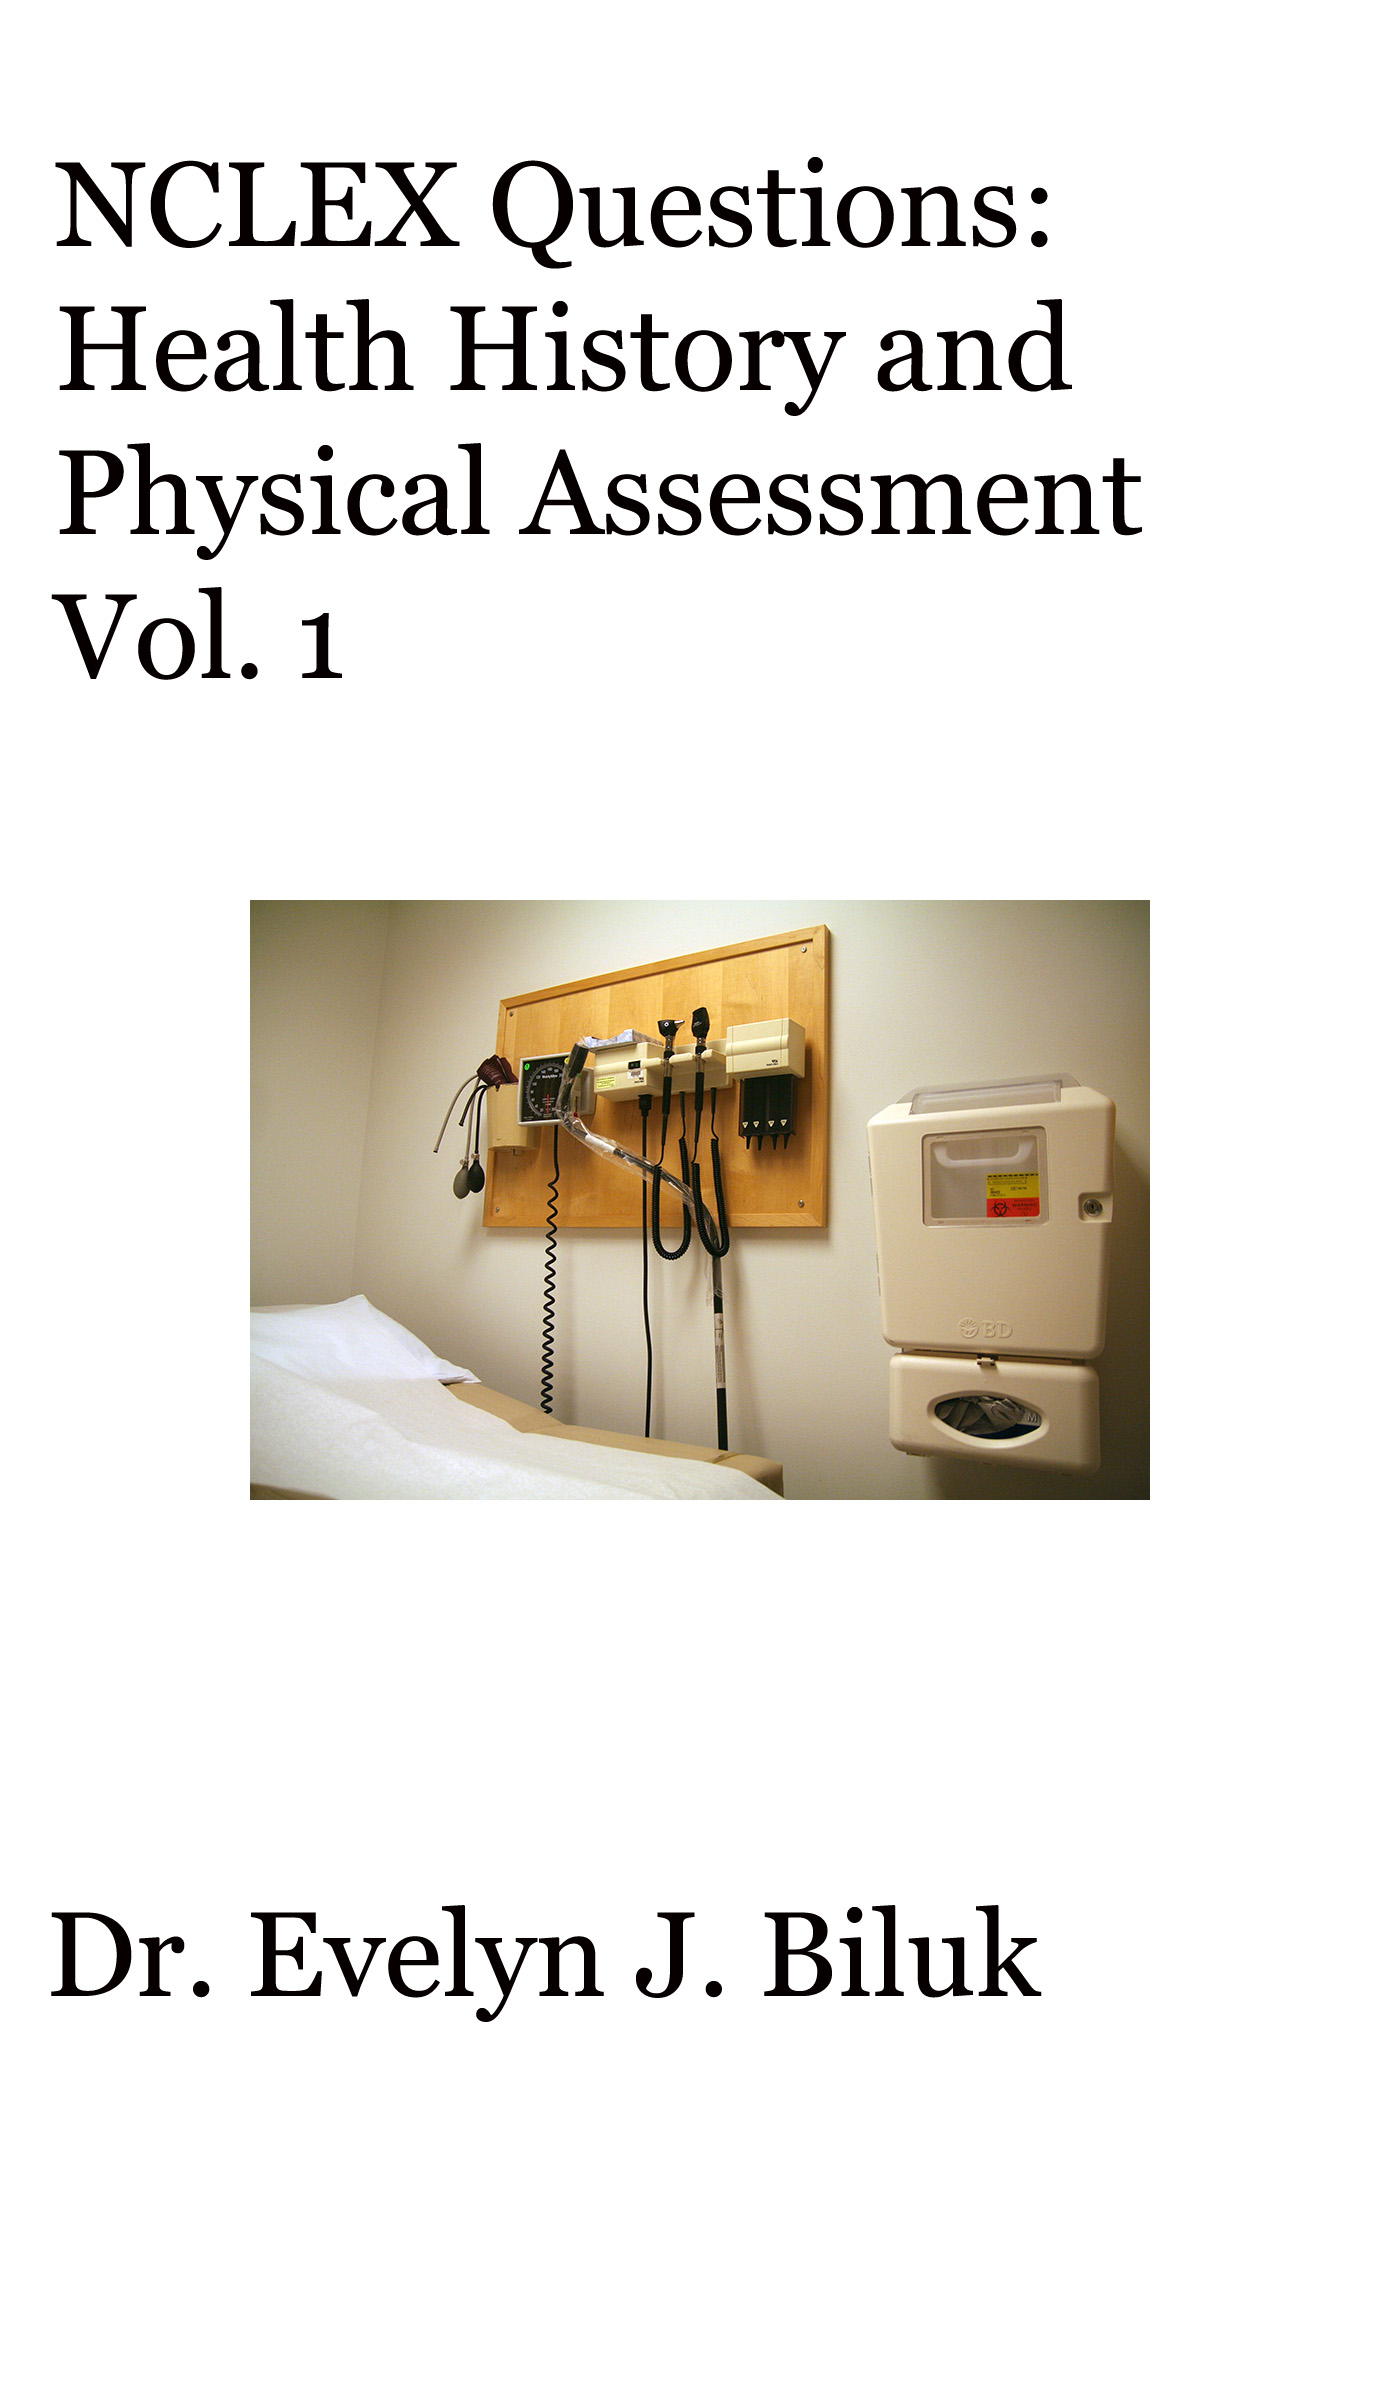 NCLEX Questions: Health History and Physical Assessment Vol  1, an Ebook by  Dr  Evelyn J Biluk